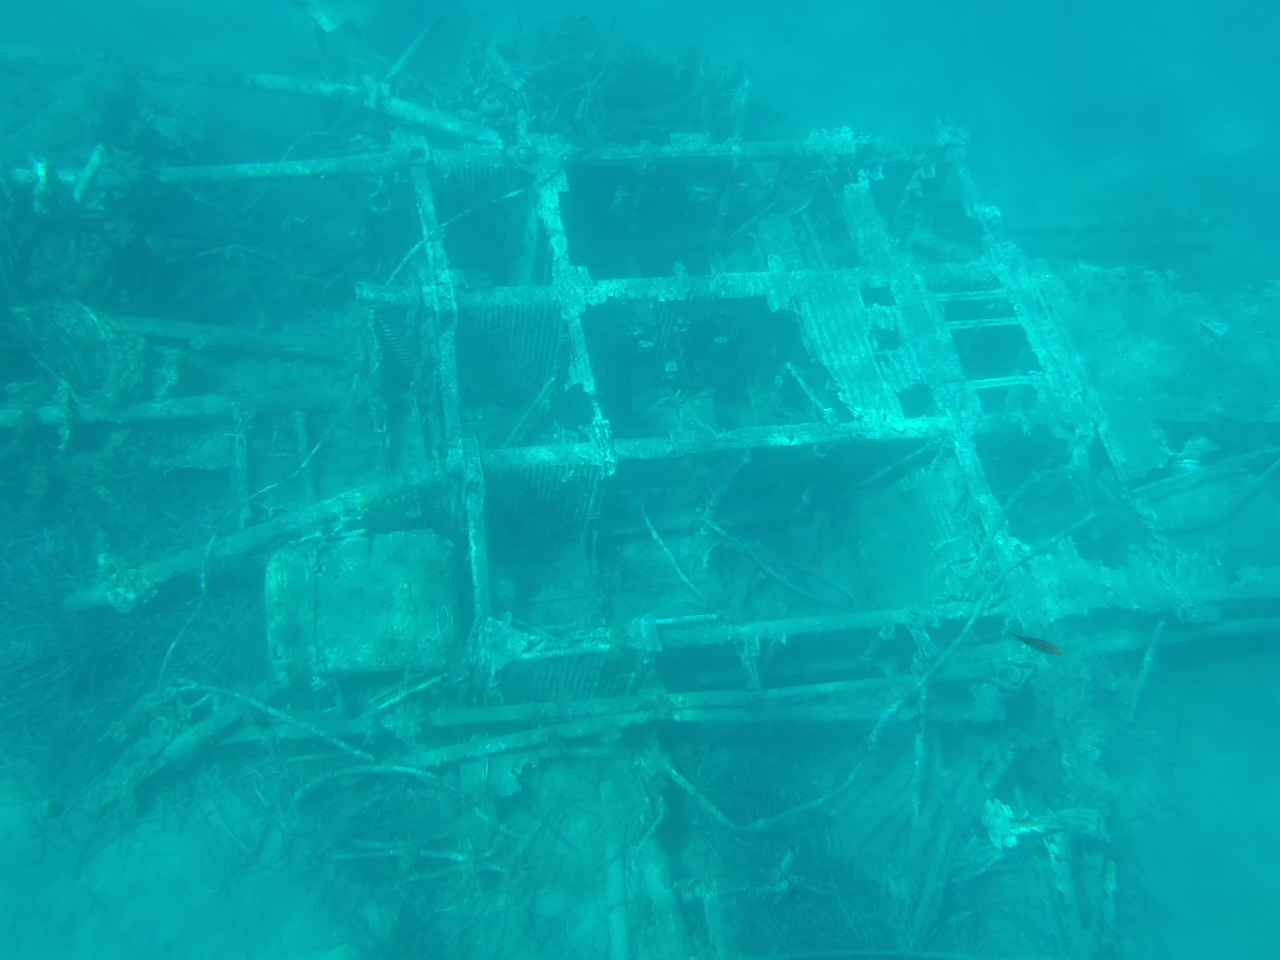 Structure Sunk Underwater